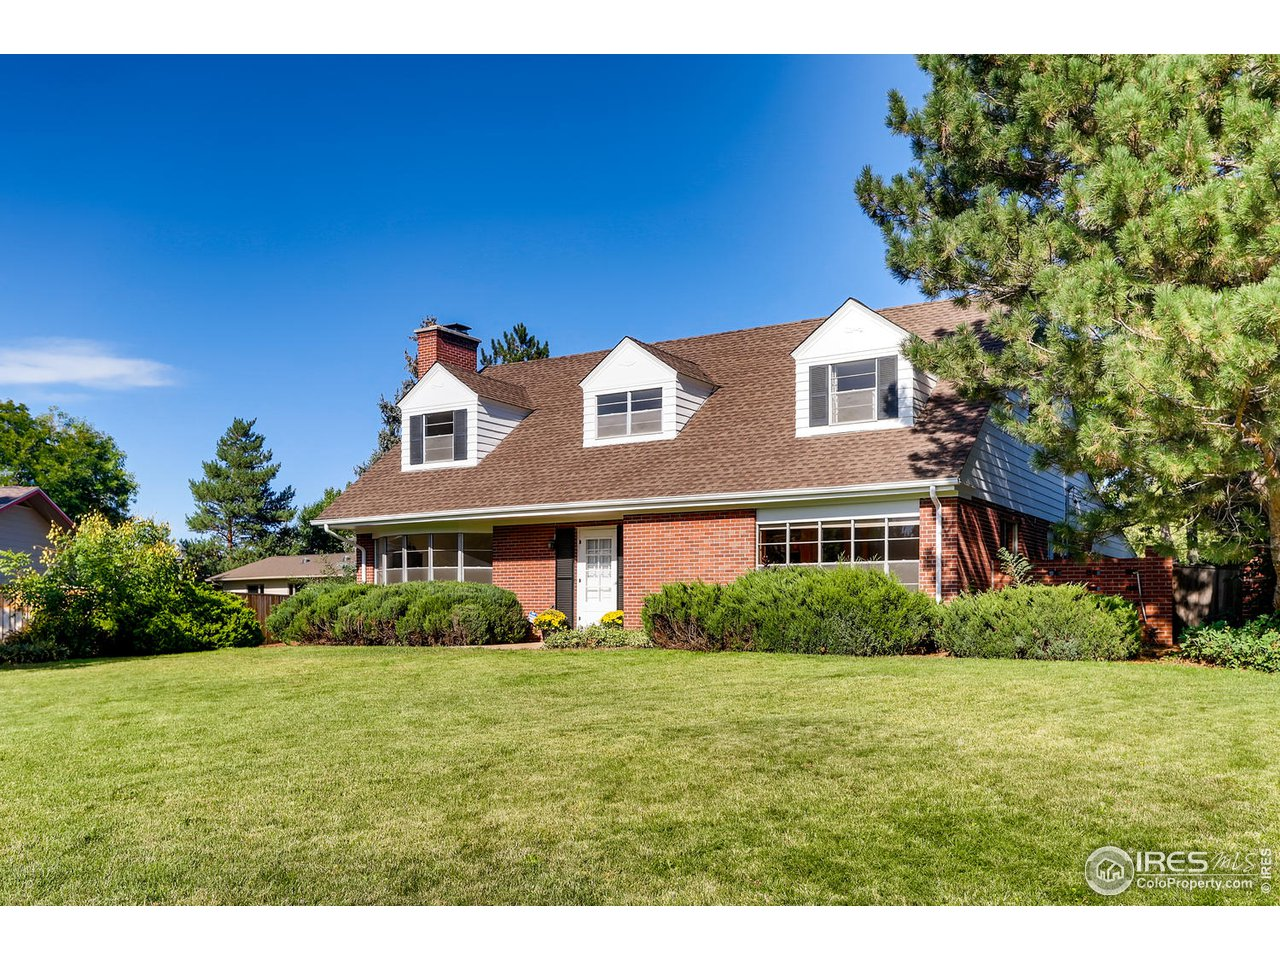 5253 Laurel Ave, Boulder CO 80303